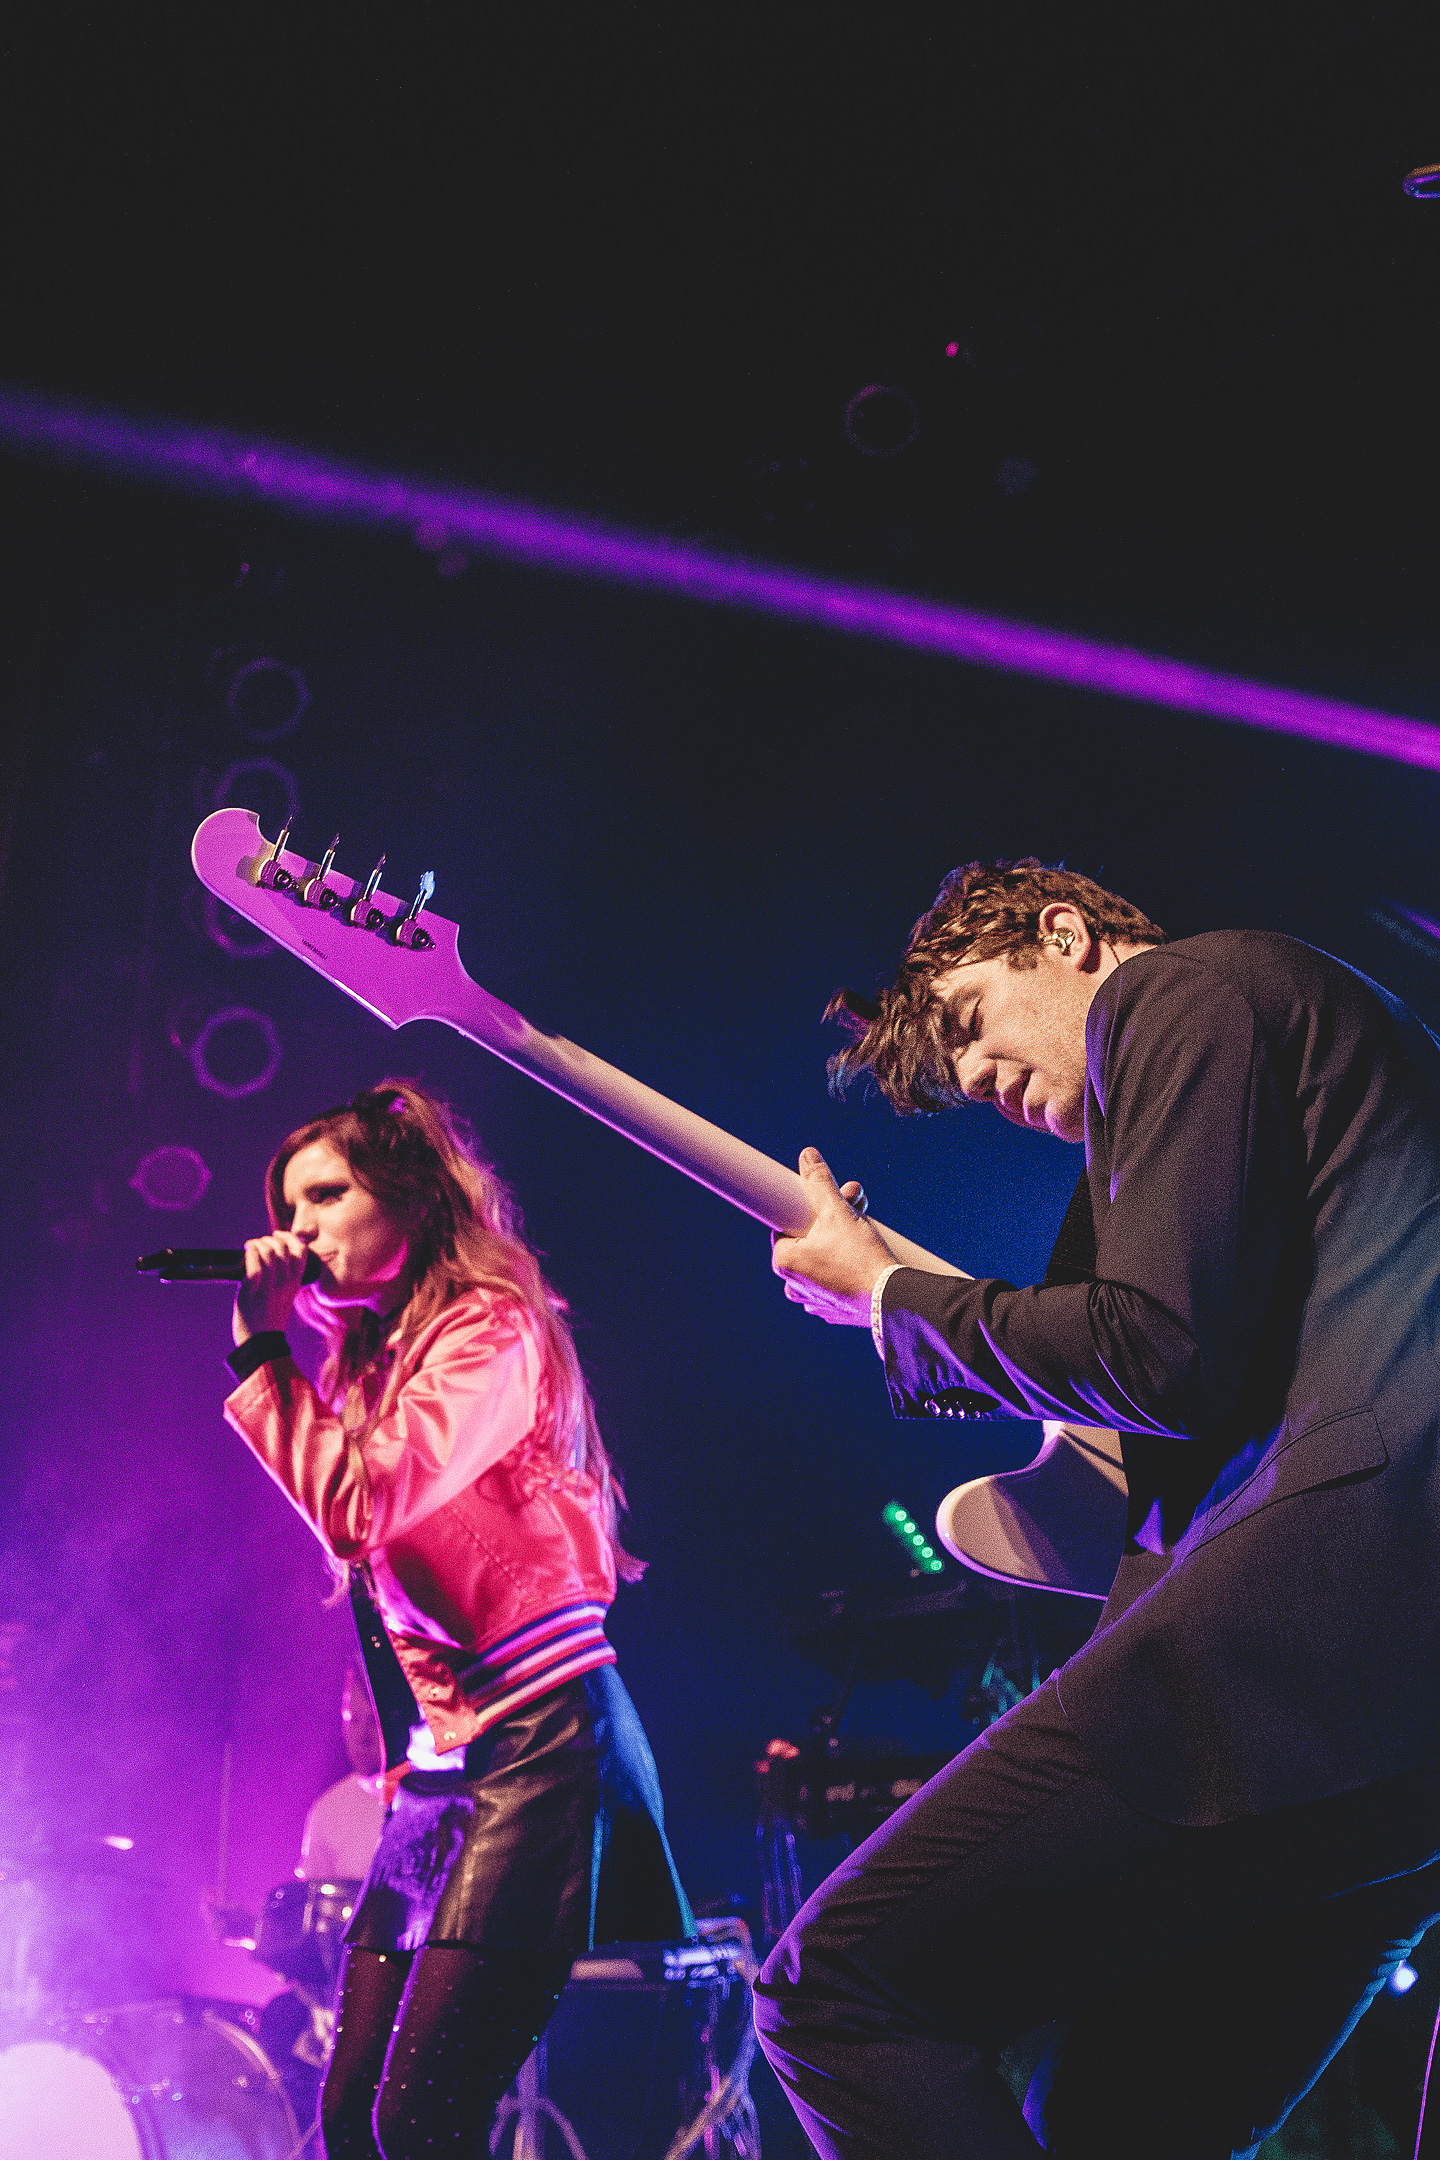 Echosmith - Concert Photos - Denver, Colorado 2018